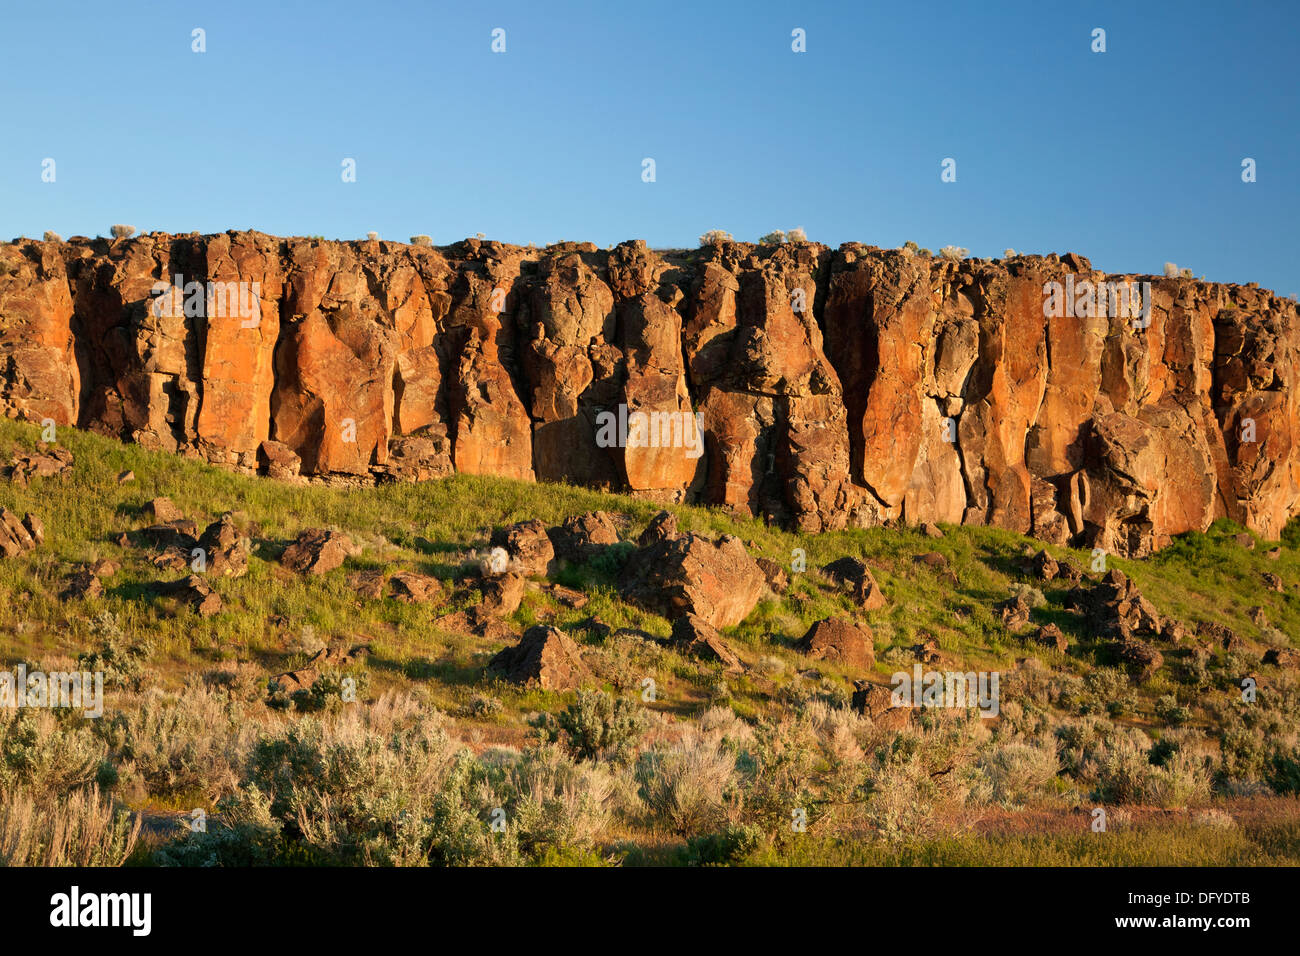 WASHINGTON - Columnar basalt on the sage and grass covered prairie near Windmill Lake in the Seep Lakes Wildlife Area. - Stock Image